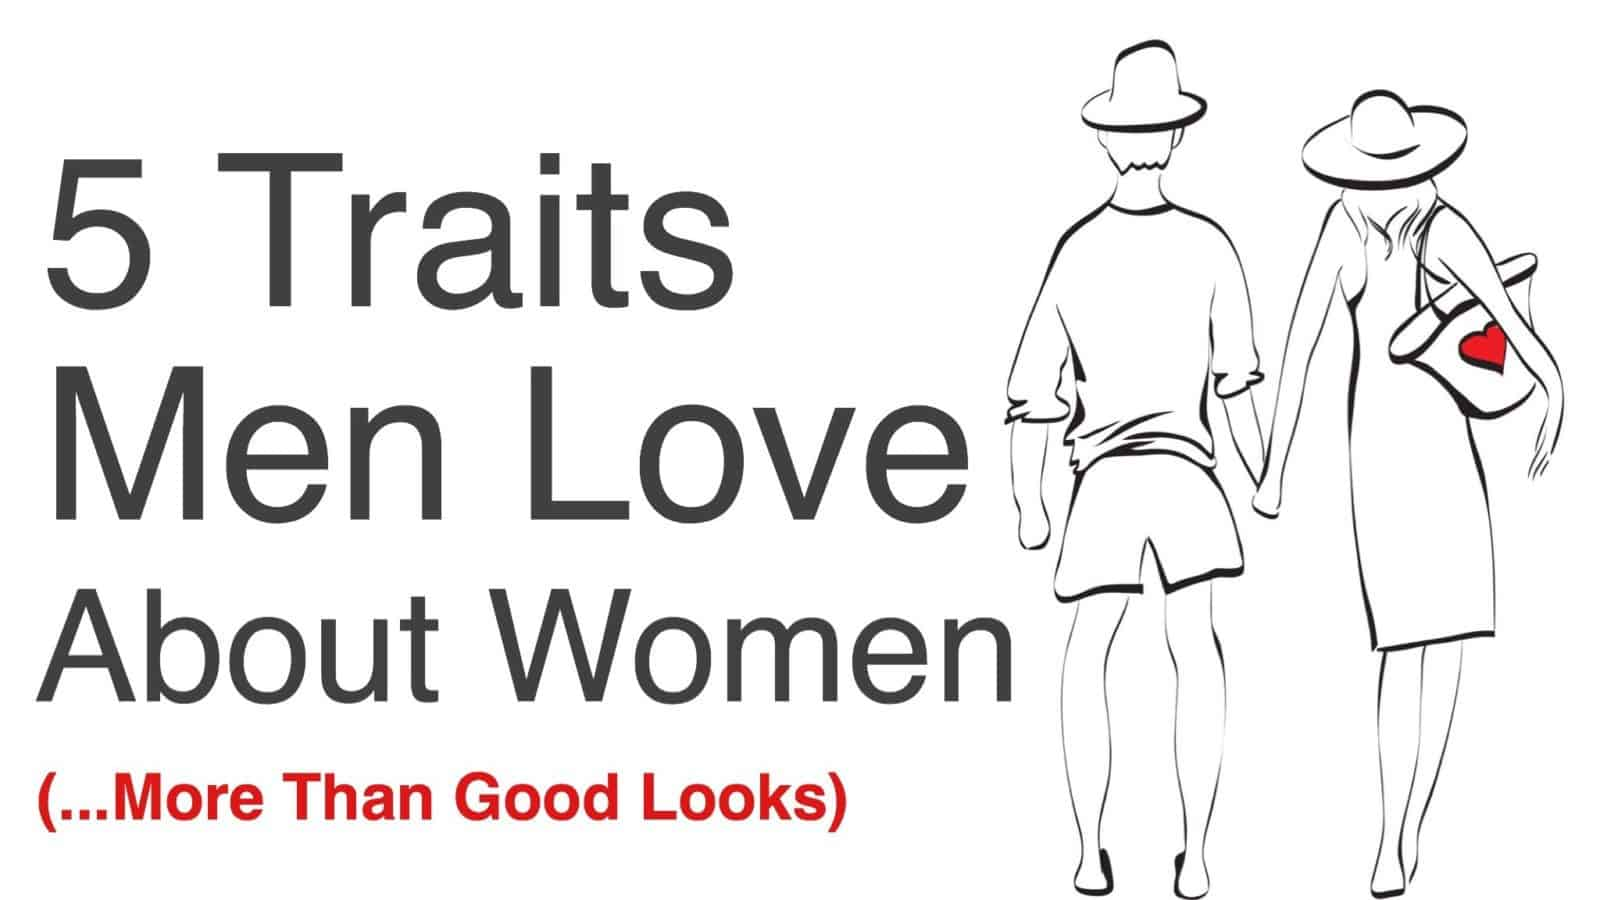 traits men love about women